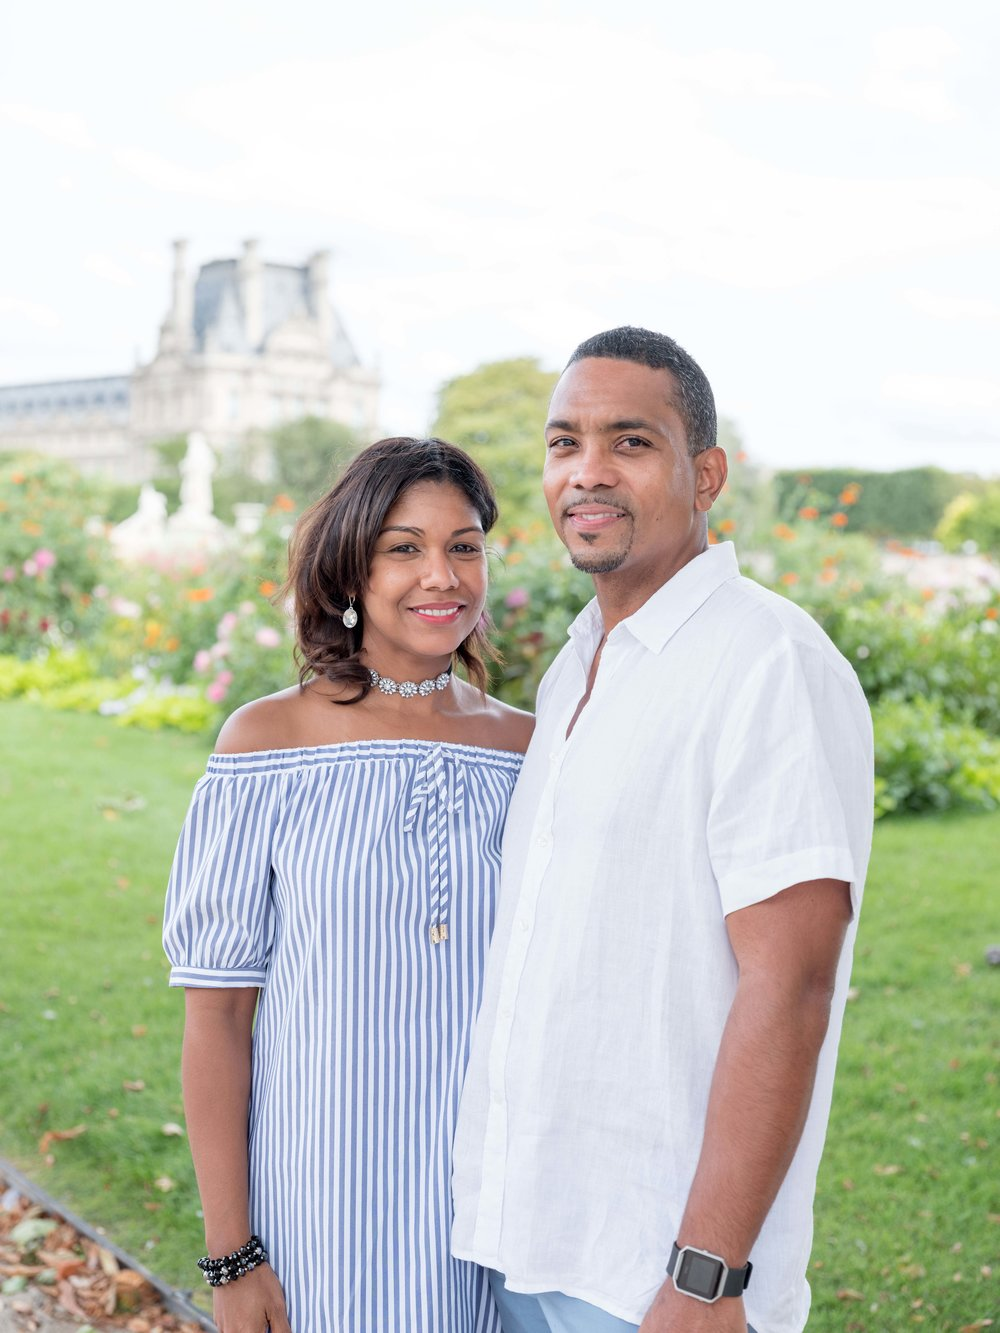 gregory & katiana - Celebrating their 24th wedding anniversary, it was such a pleasure to spend a Sunday afternoon in Paris with this beautiful couple from Miami. I was so happy to show them a bit of Paris and capture their love story to cherish forever!See more images here